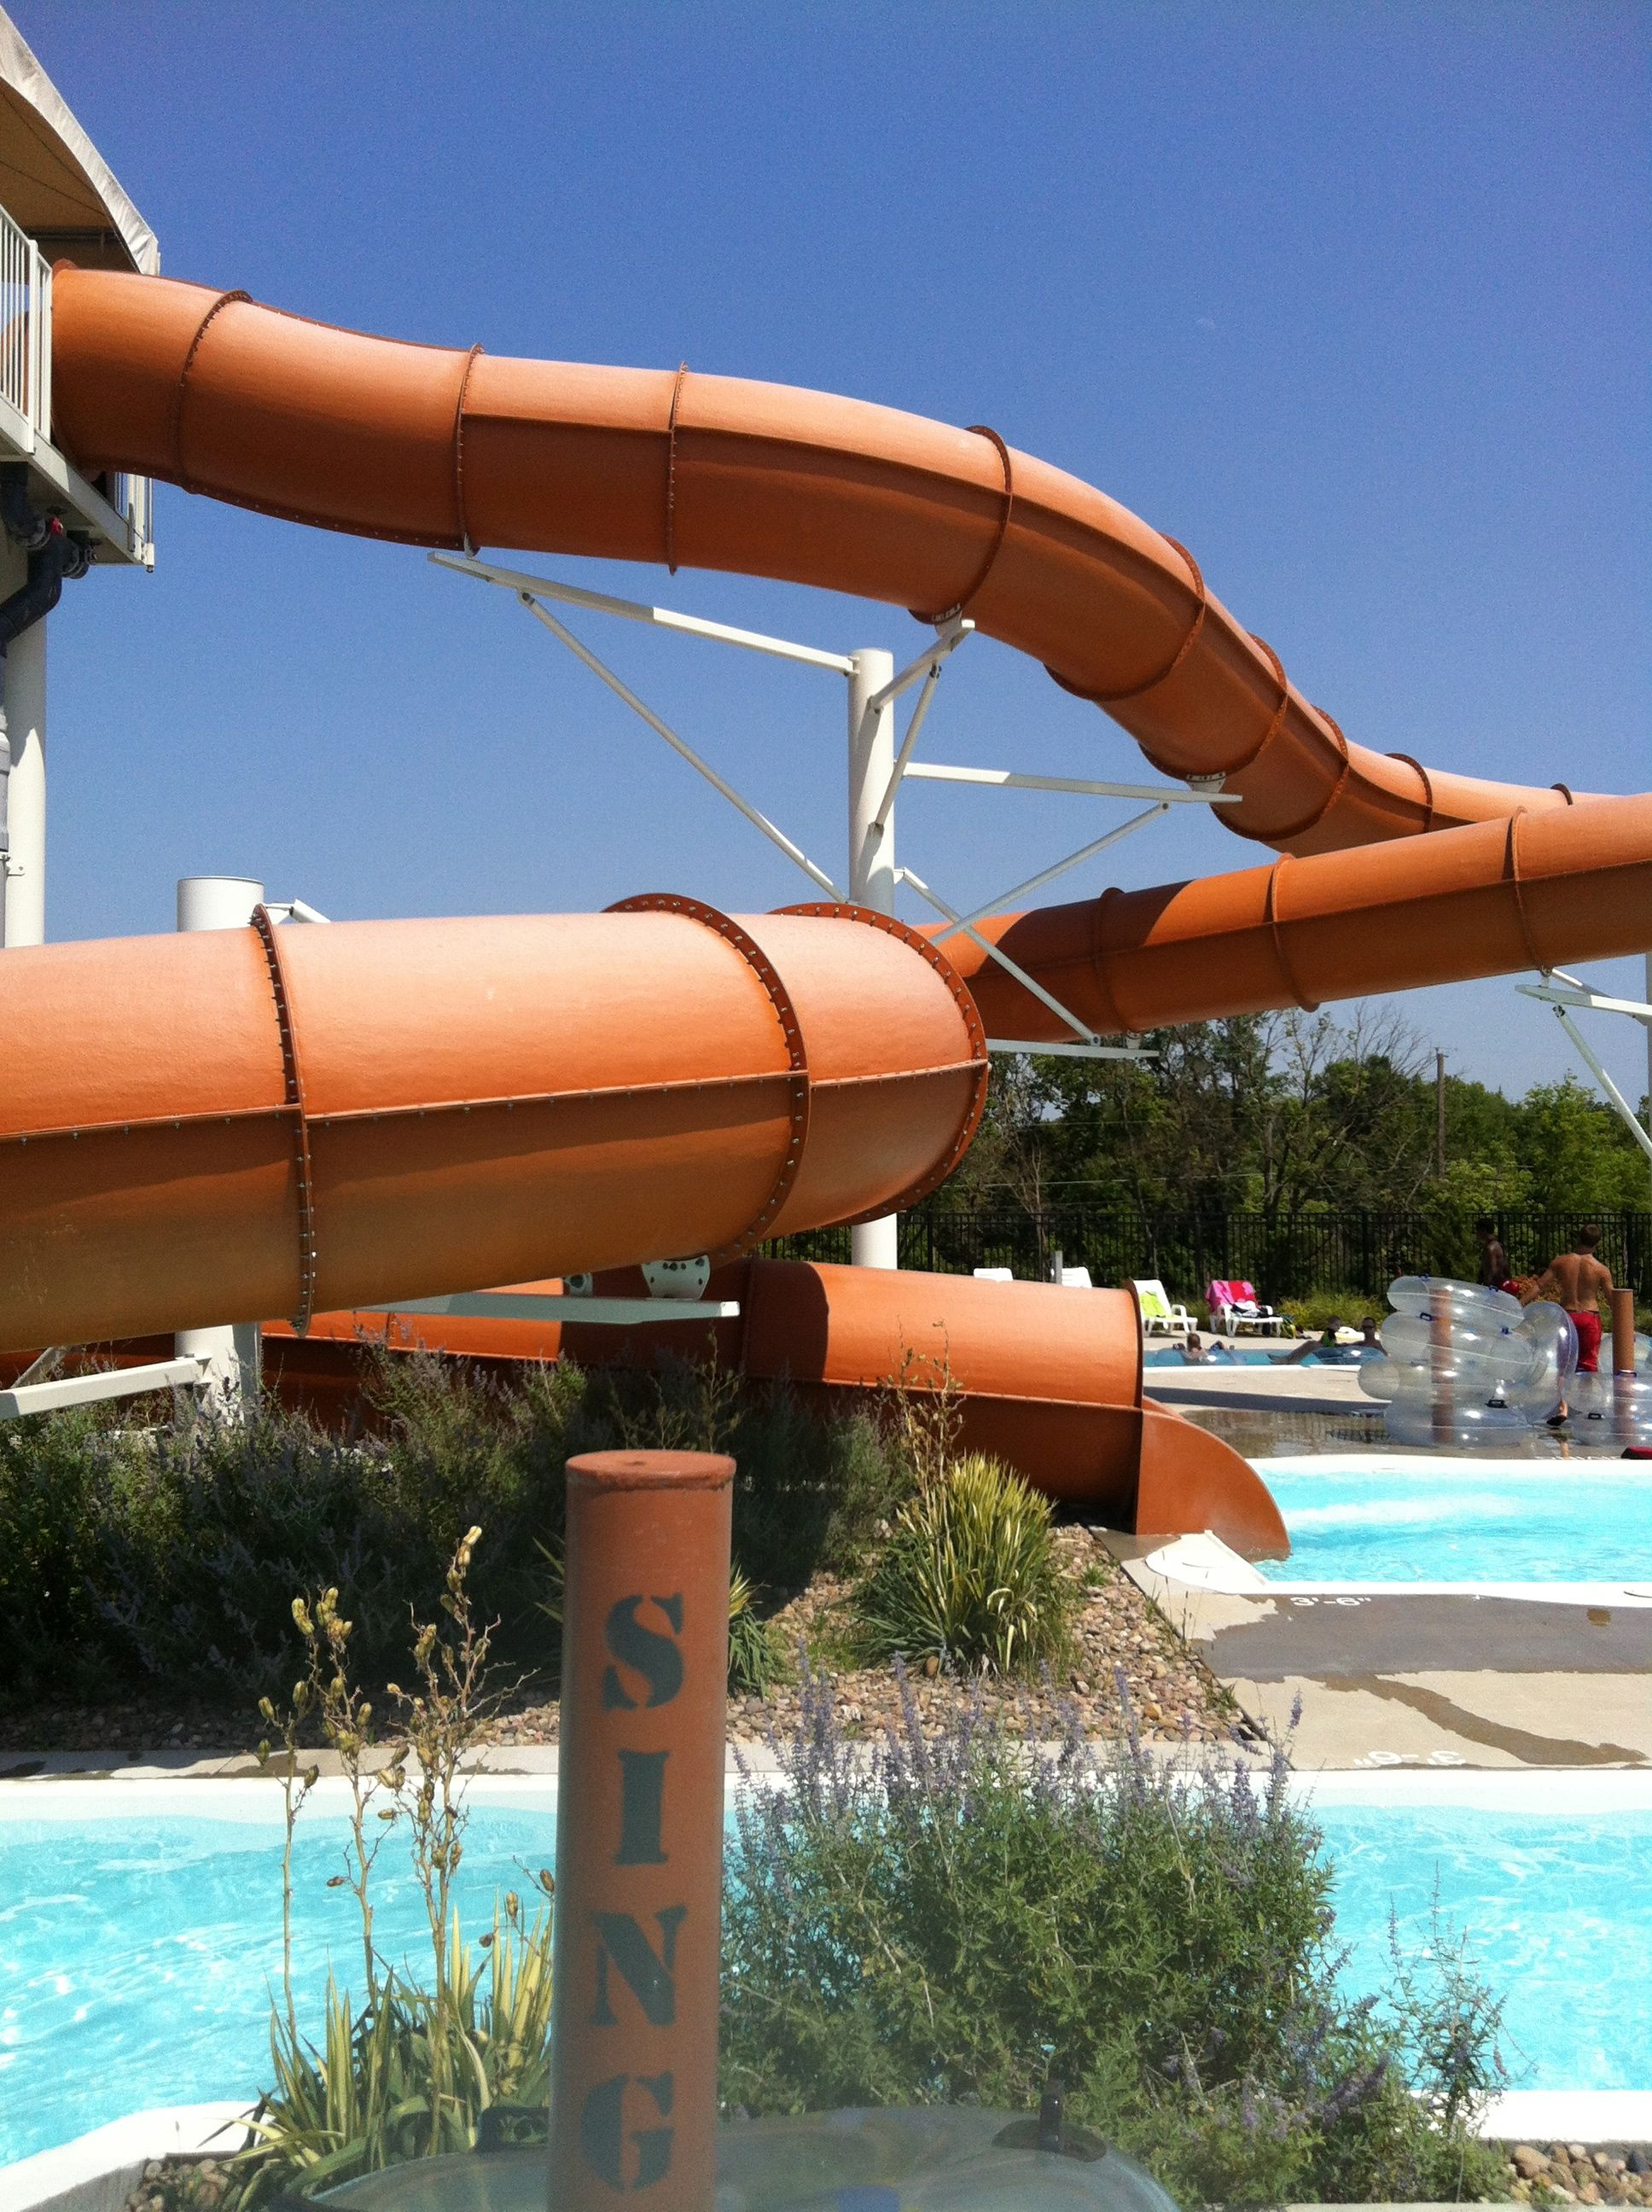 water park orange slide